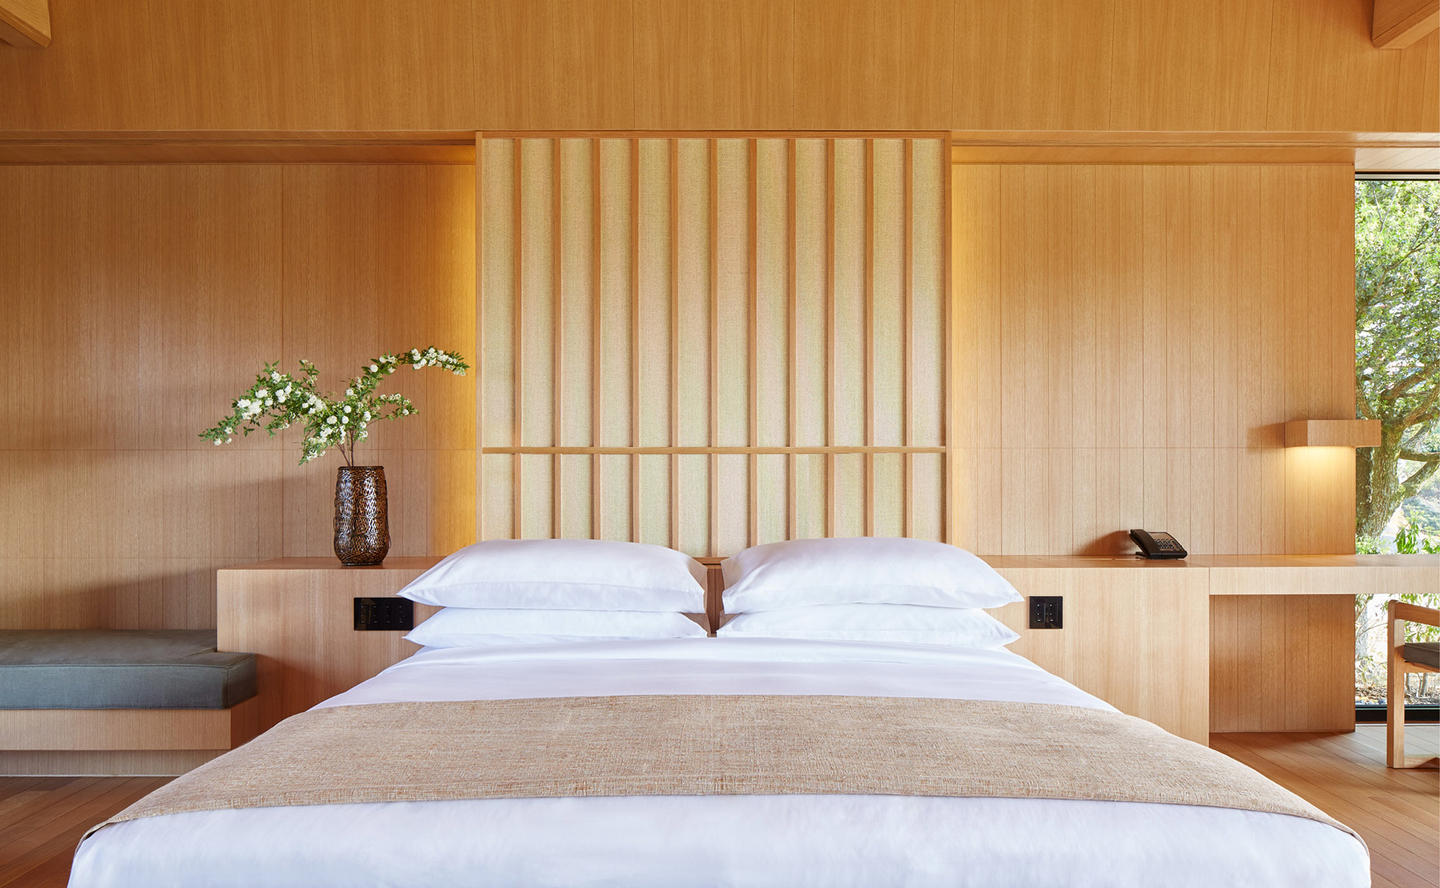 Bedroom, Mori Villa - Amanemu, Japan